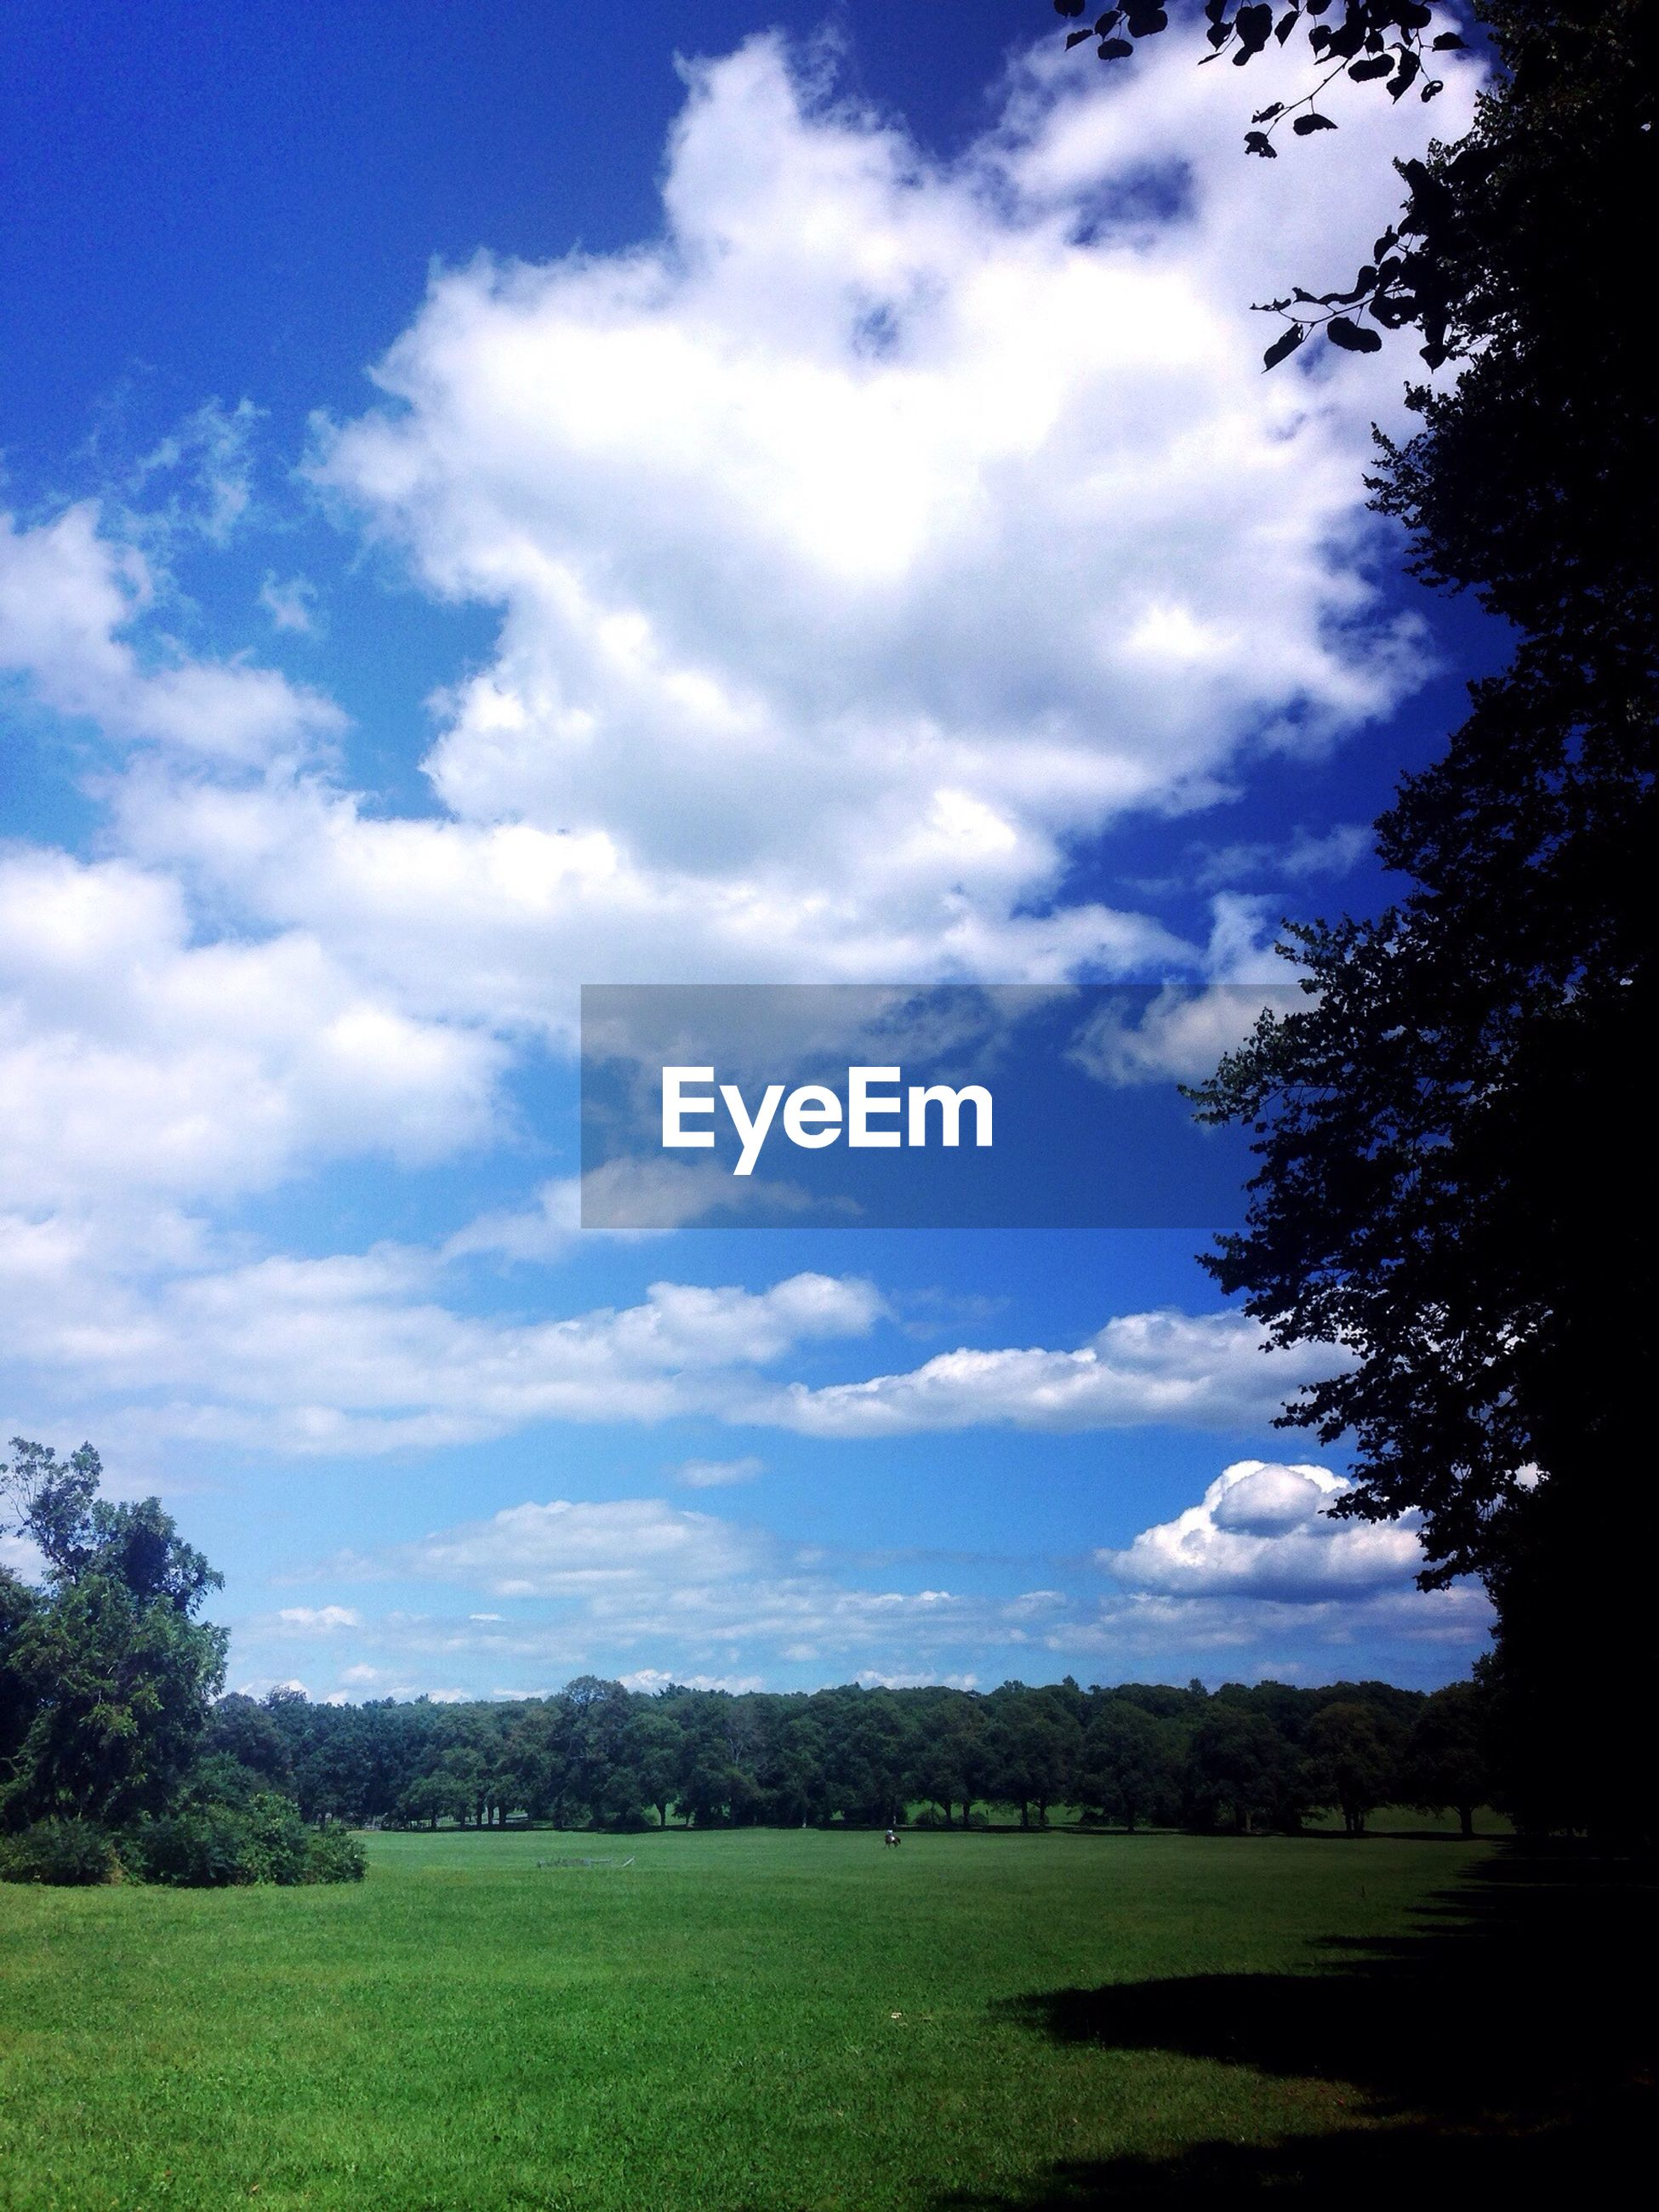 Scenic view of trees on grassy field against sky